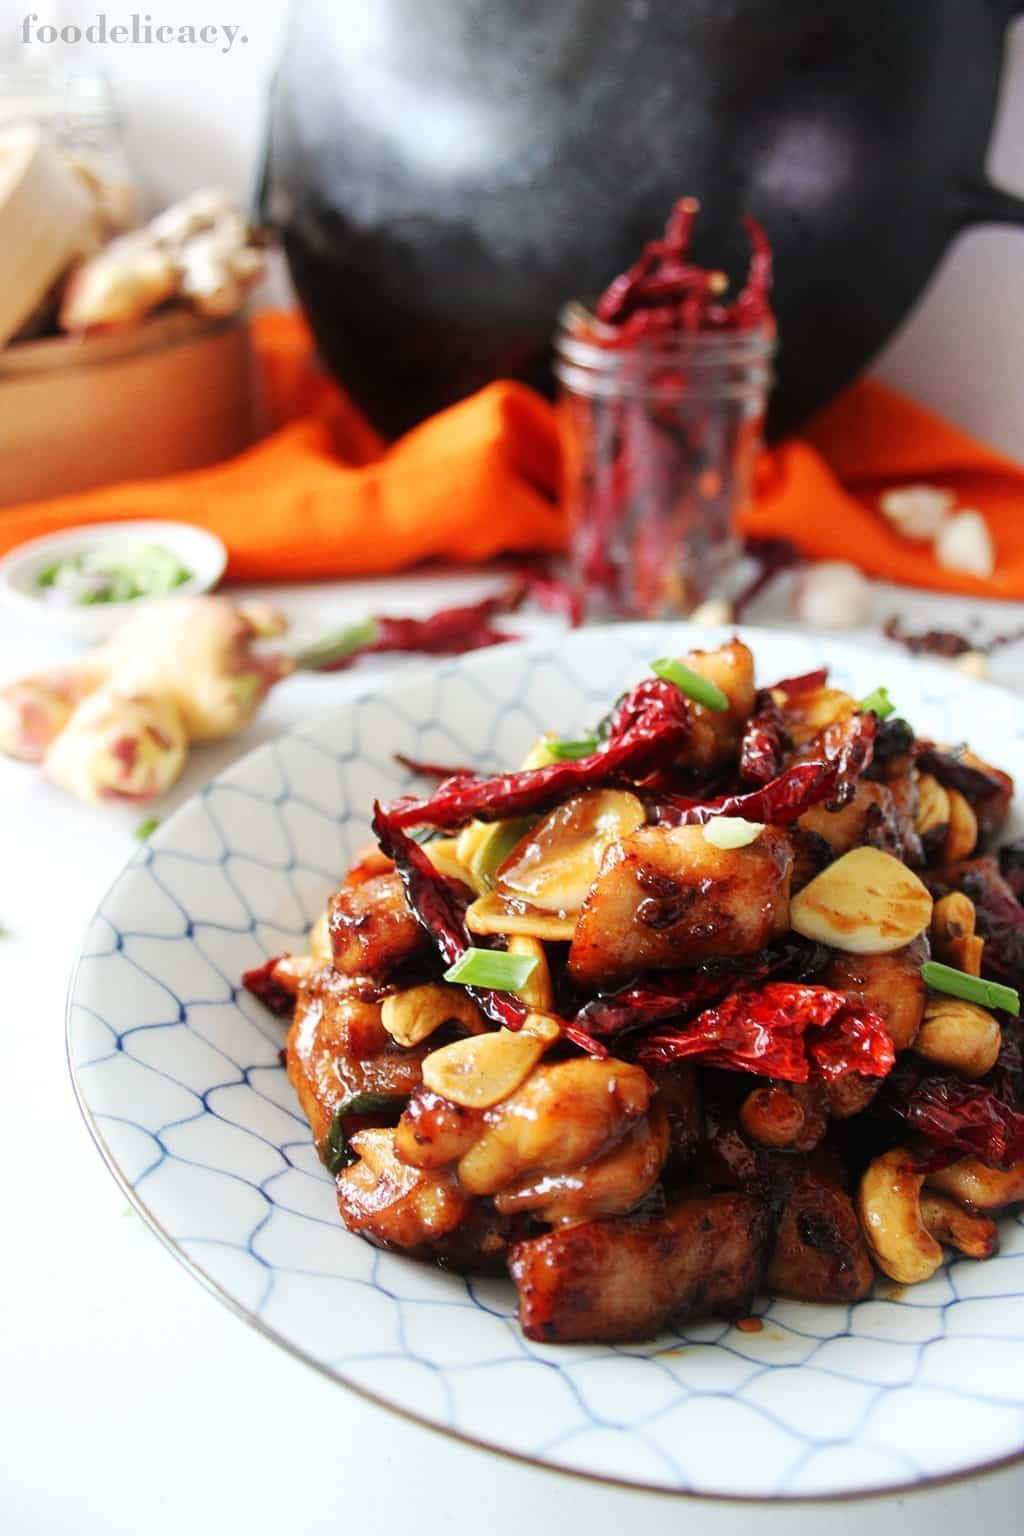 gong bao chicken (chicken fried with dried chillies)